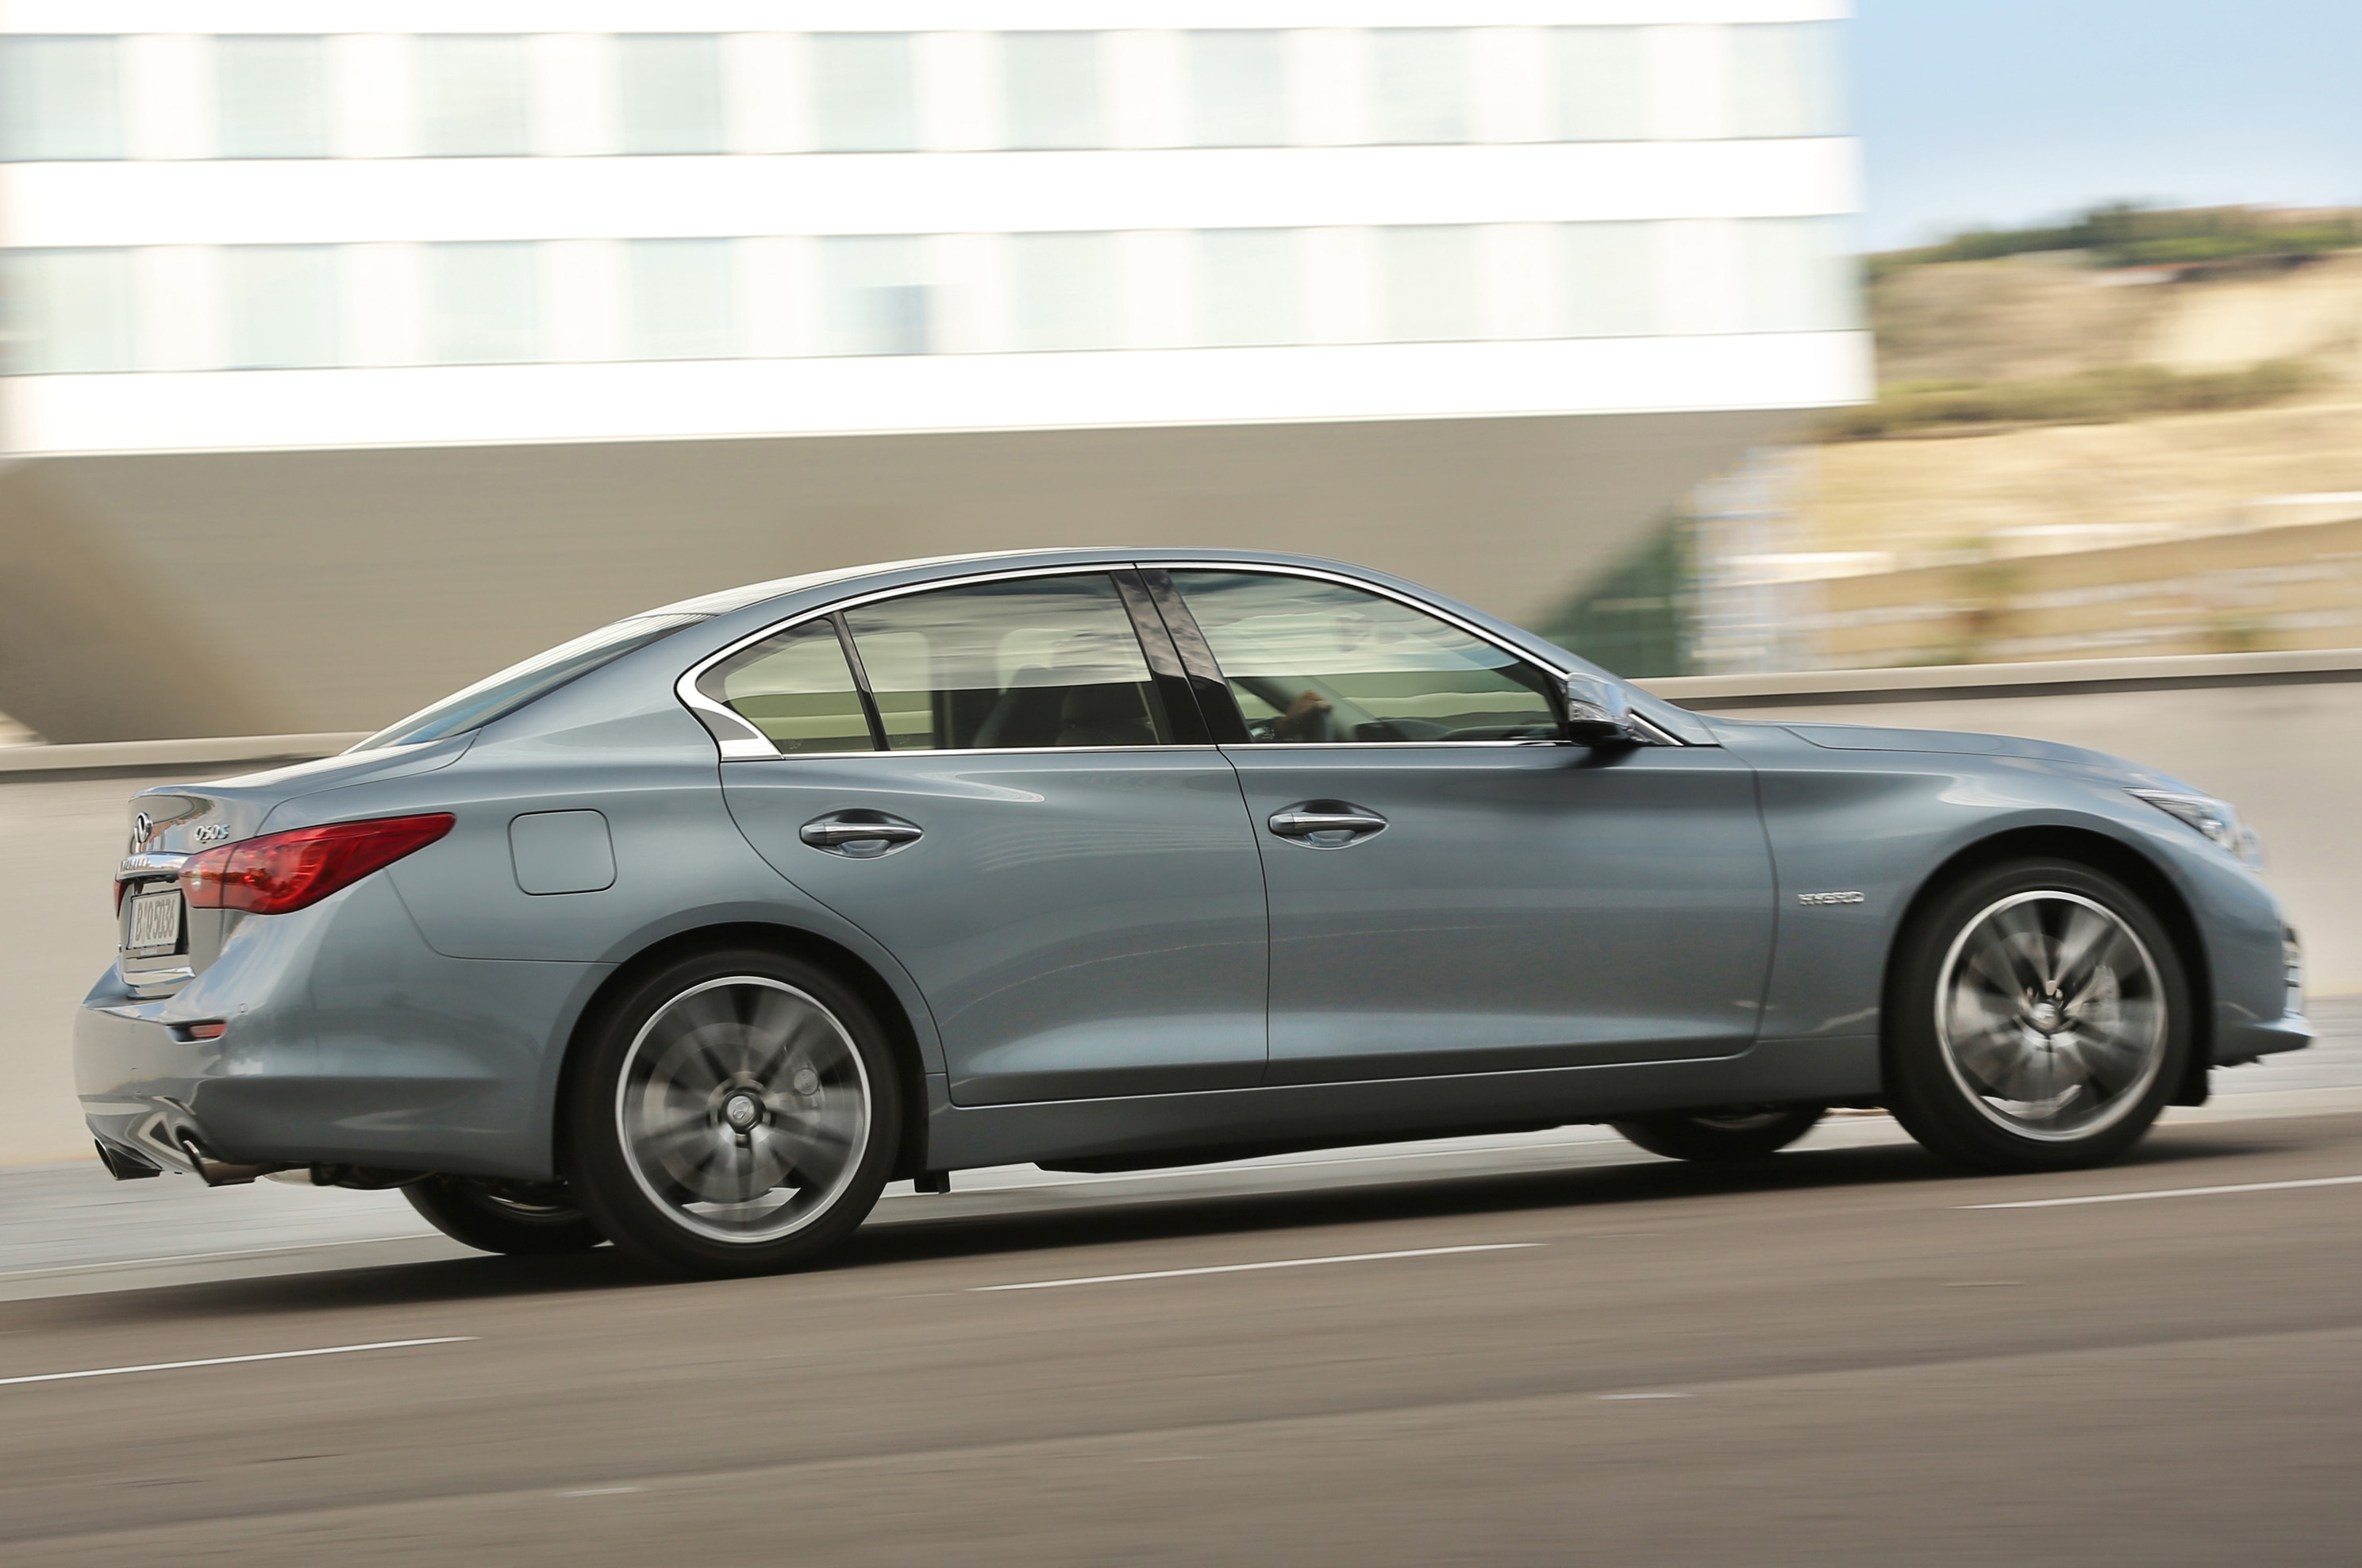 2015 Infiniti Q50 For Sale >> 2014 Infiniti Q50 Gains Turbocharged Four-Cylinder Engine In China